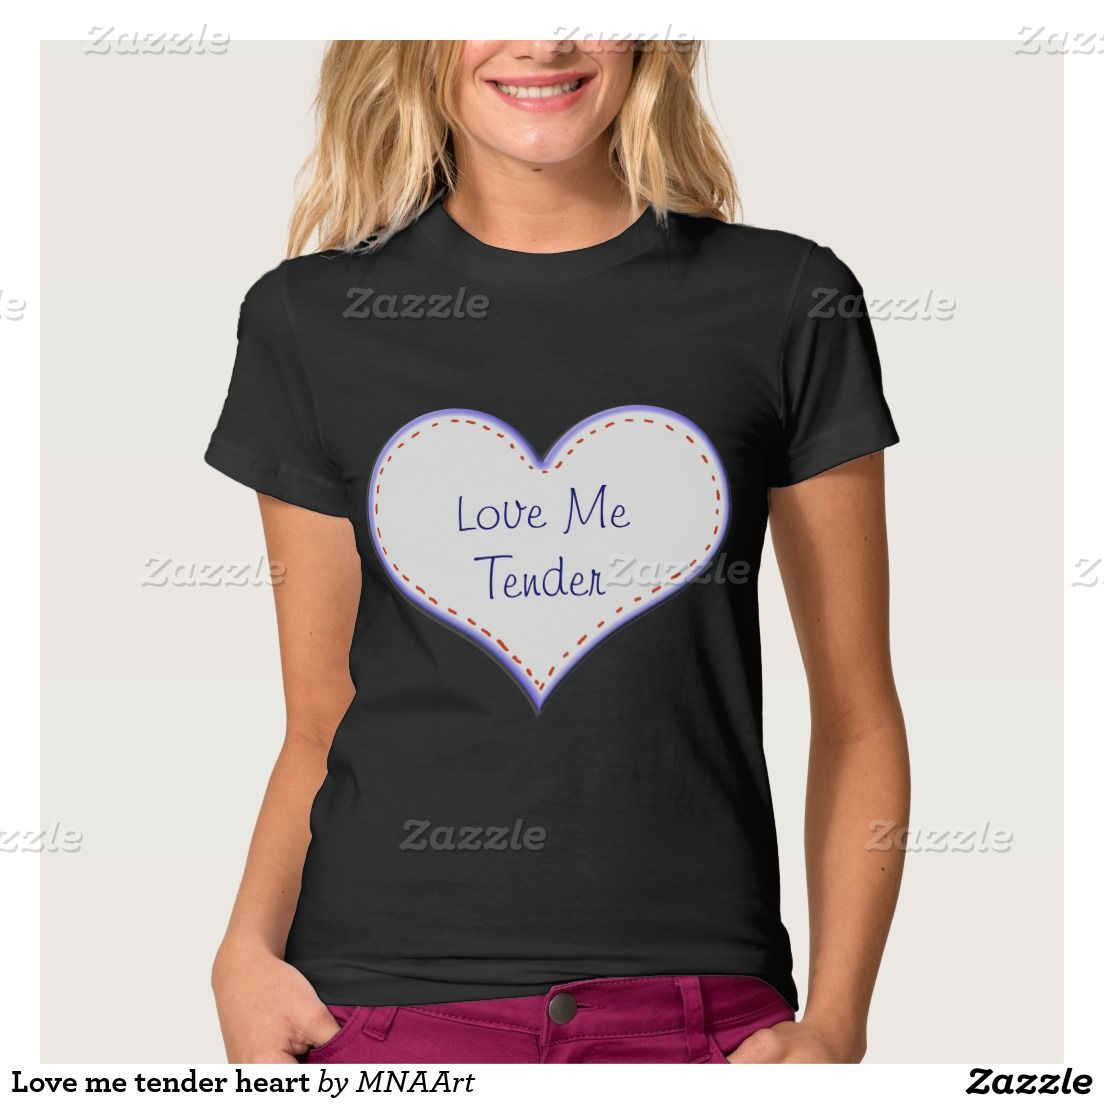 Love me tender heart tee shirtLove me tender heart tee shirt #love #Shirt #mnaart